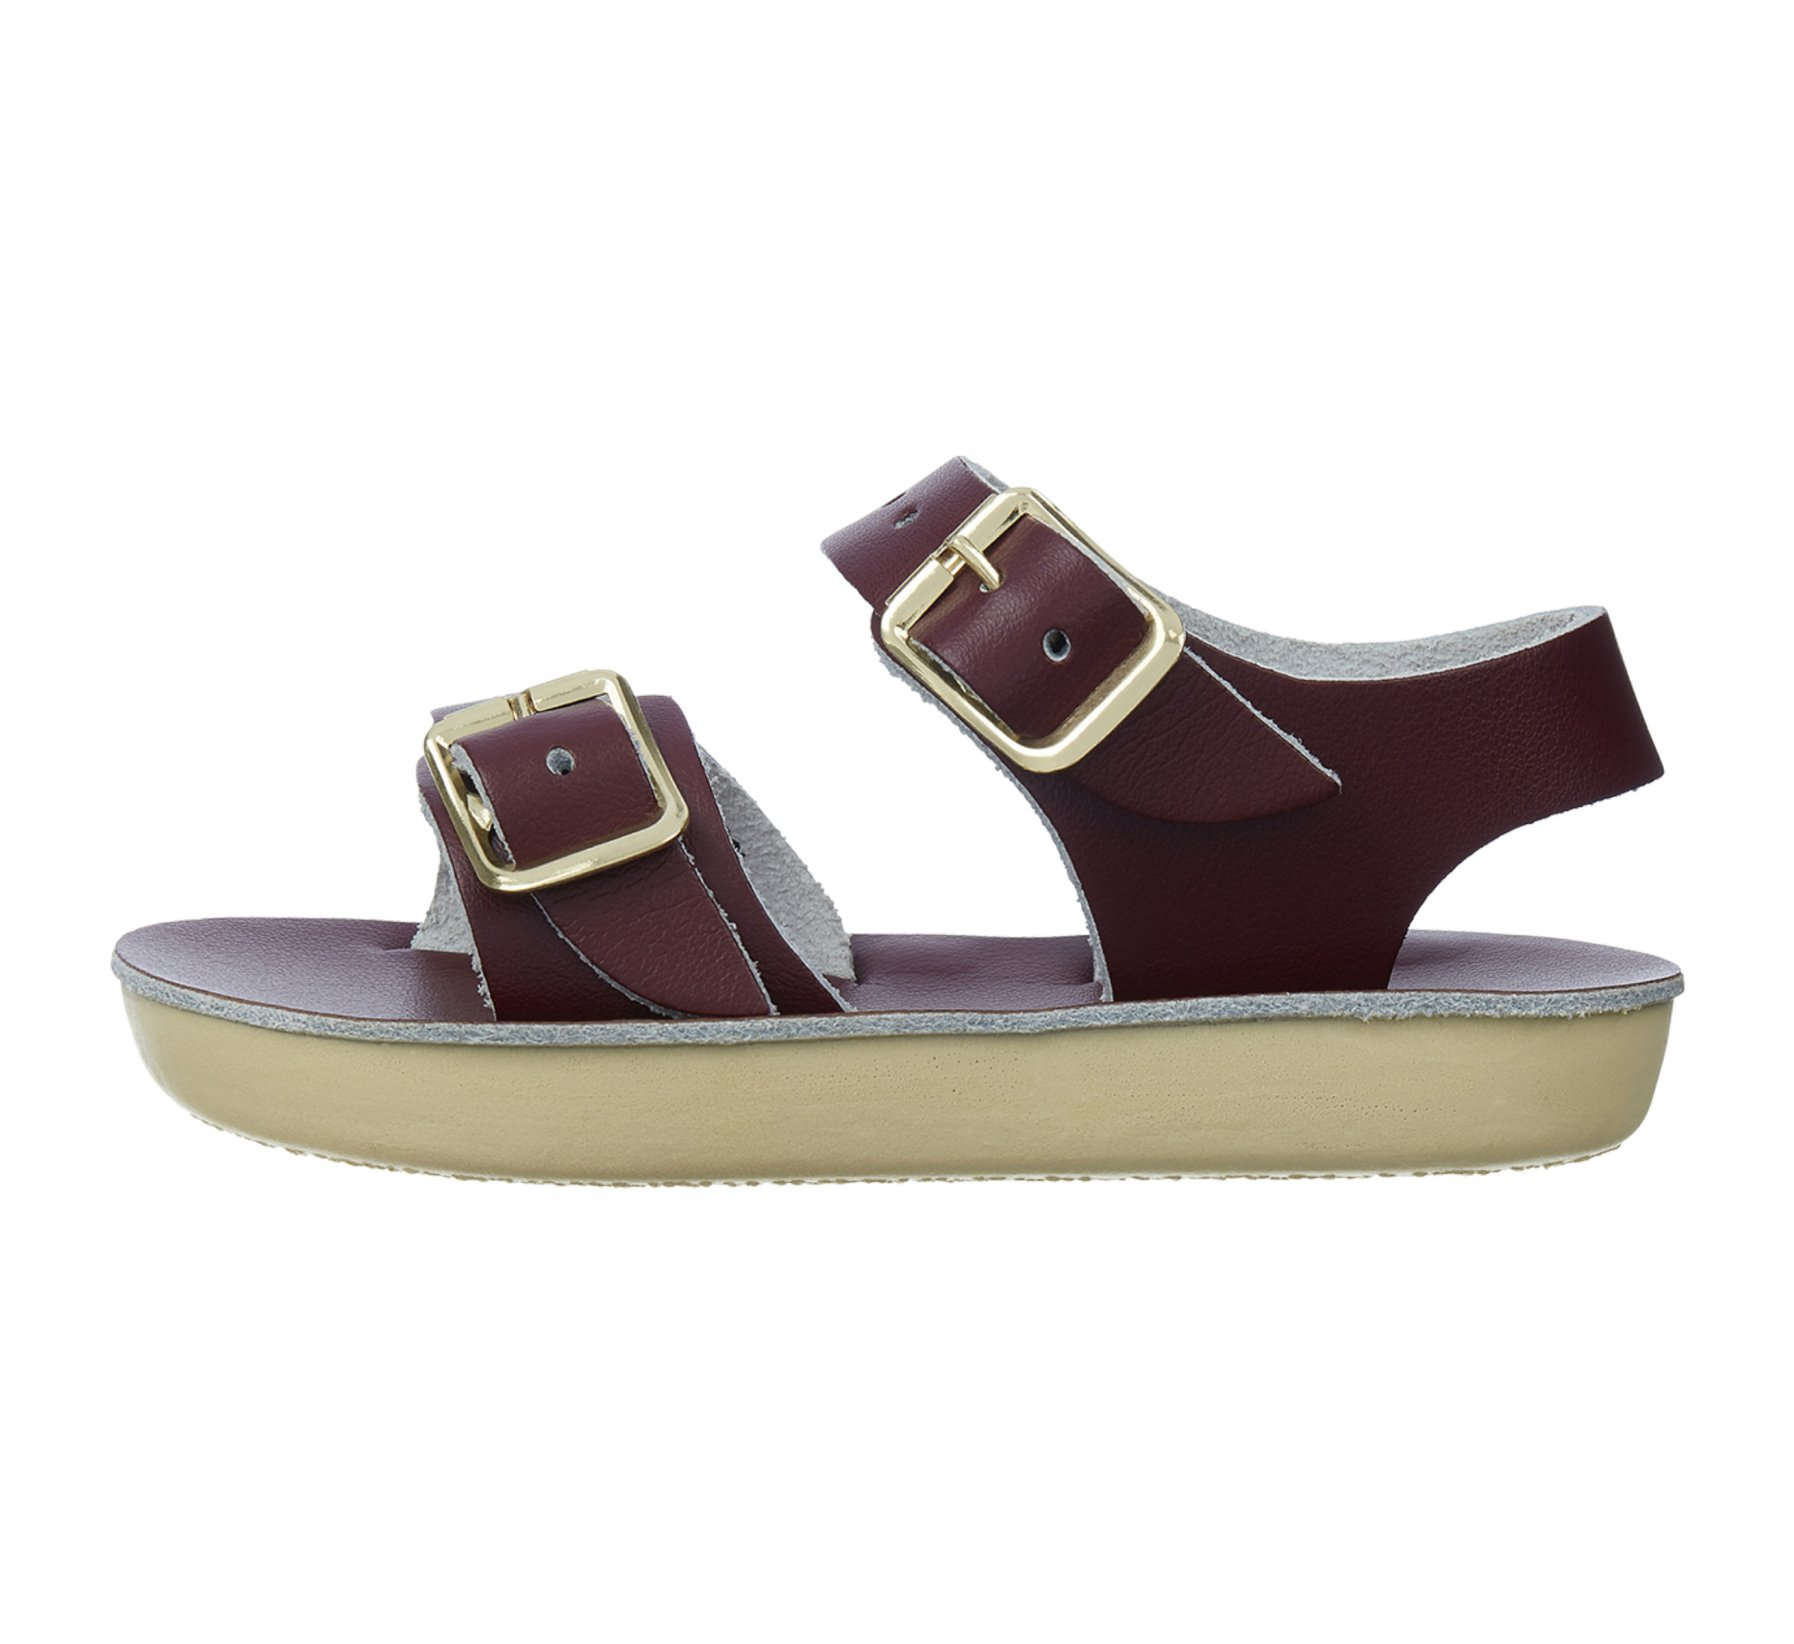 Seawee in Bordeaux - Salt Water Sandals